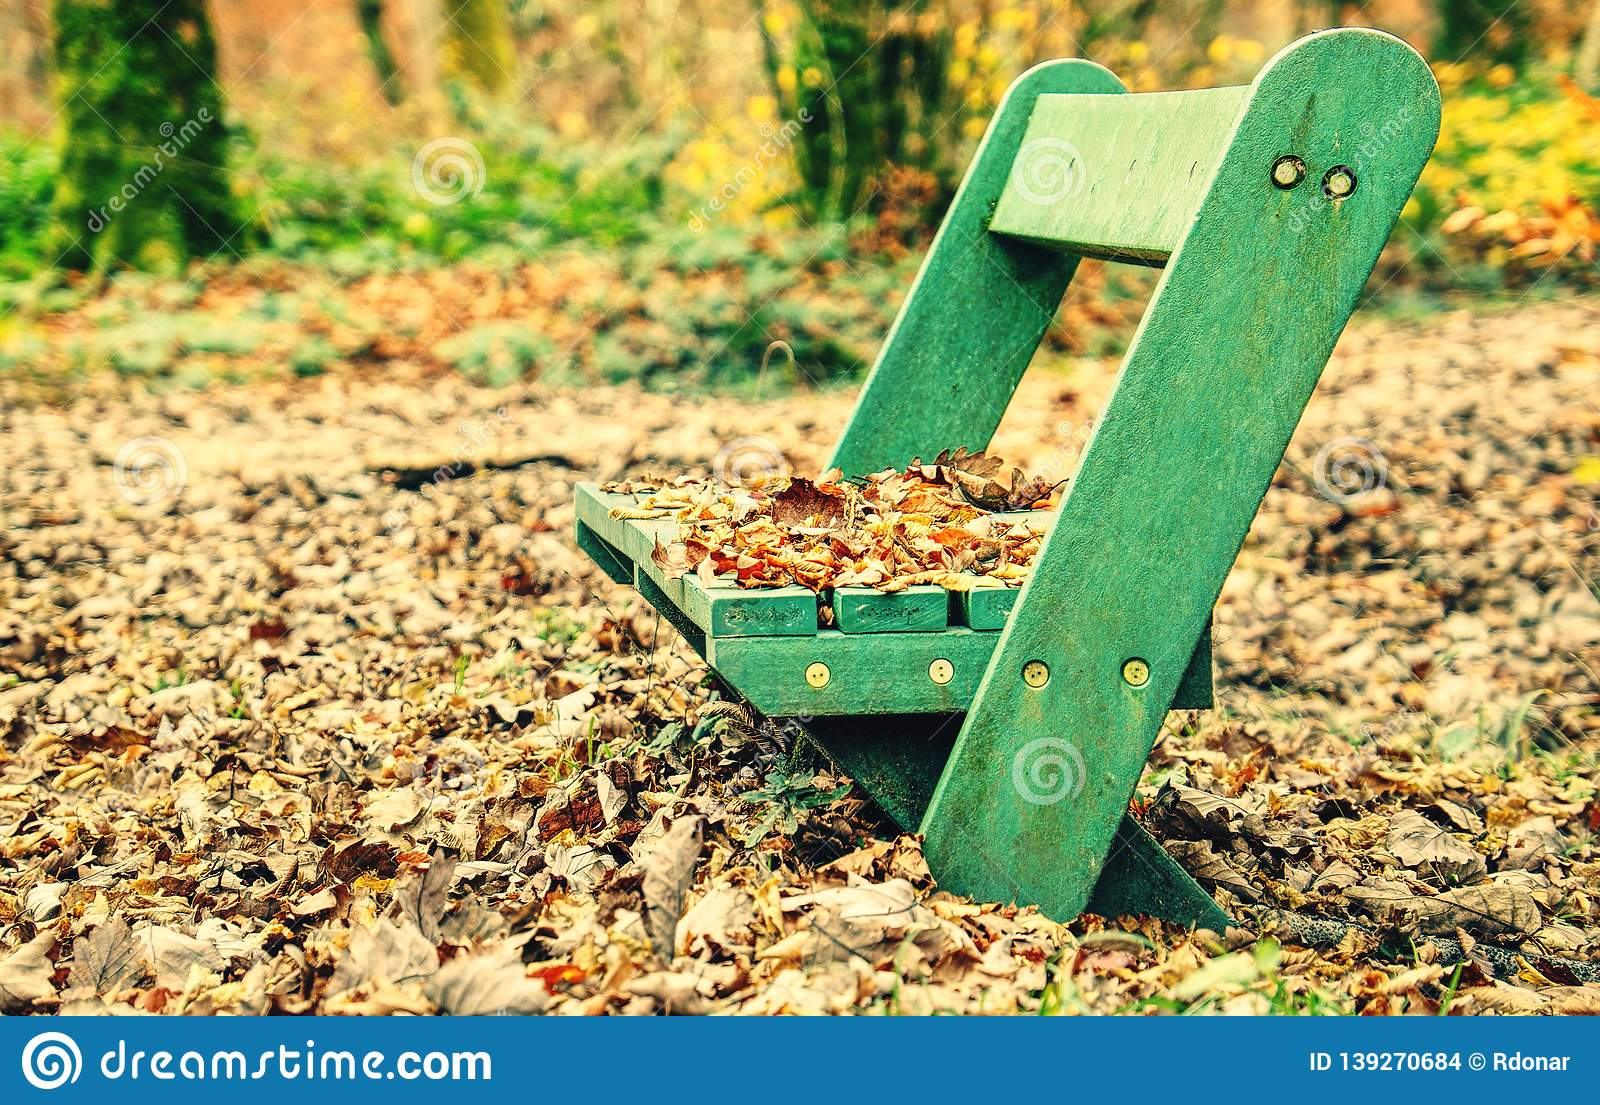 Bench In Autumn Park Wooden Bench In City Park Stock Photo